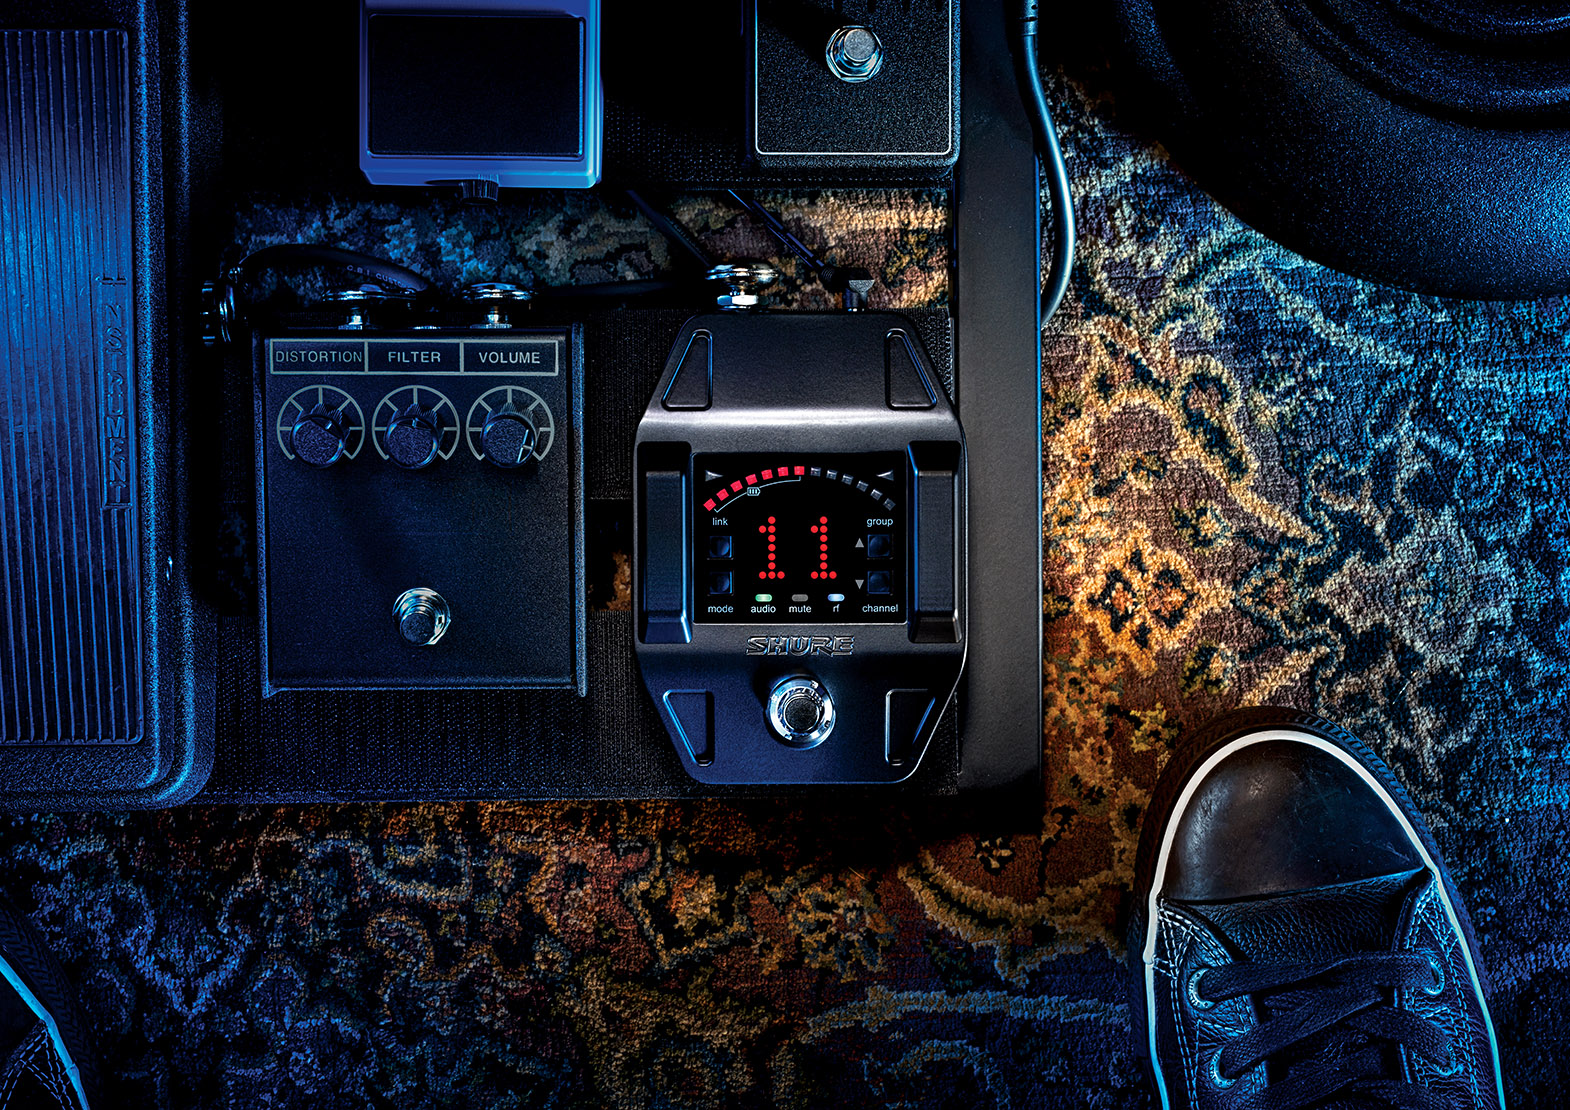 GLXD_Wireless_Guitar_Pedal_Beauty_Intensify_1200px